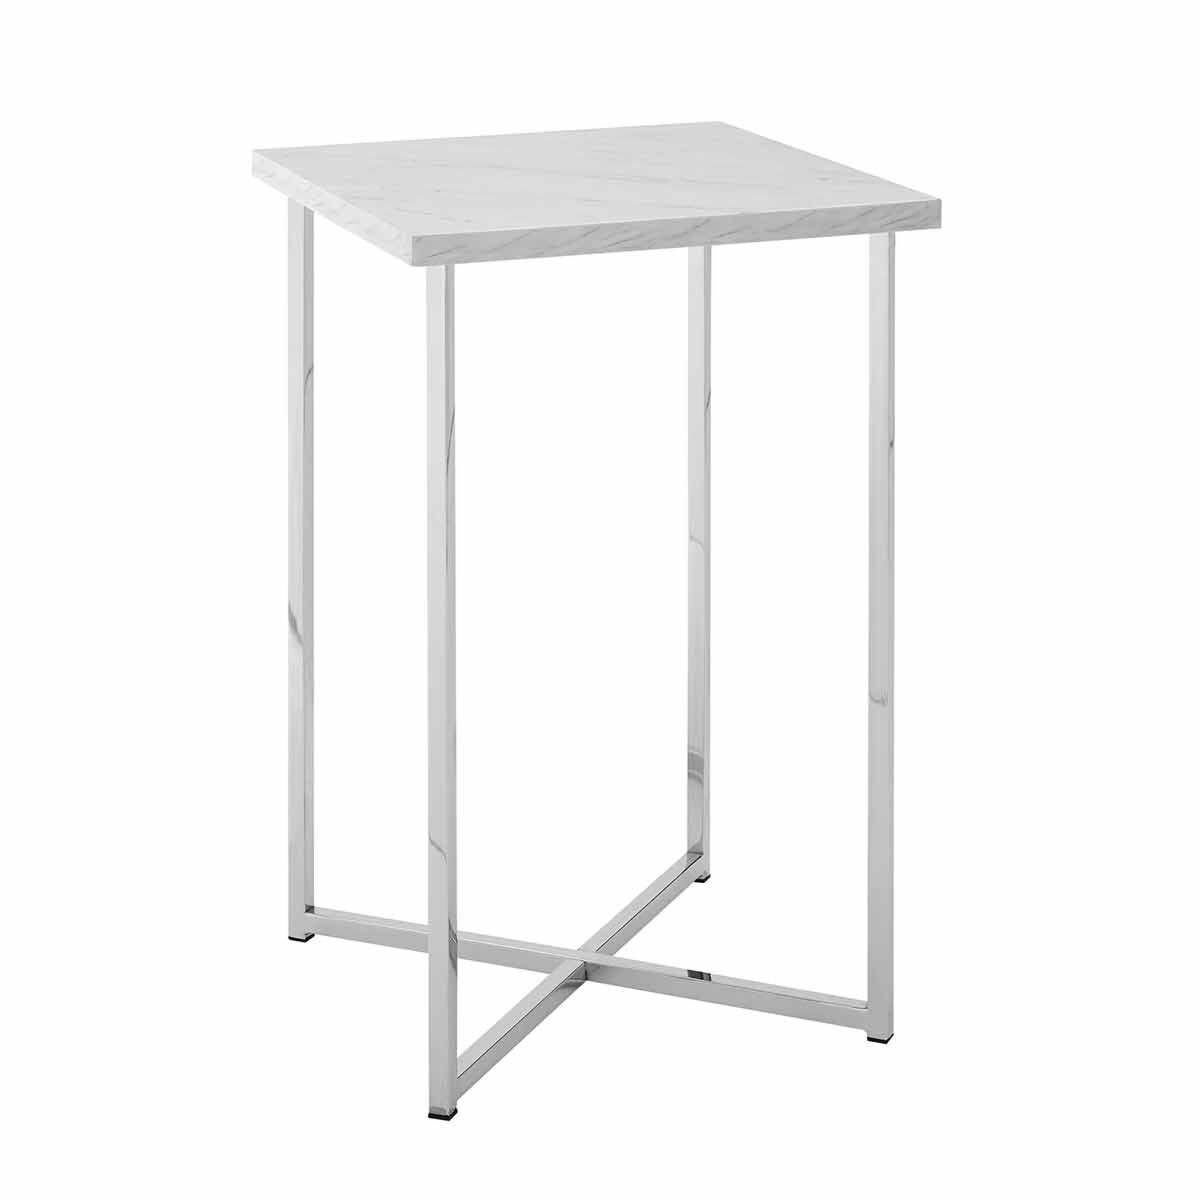 Seattle Modern Square Side Table with Chrome Legs